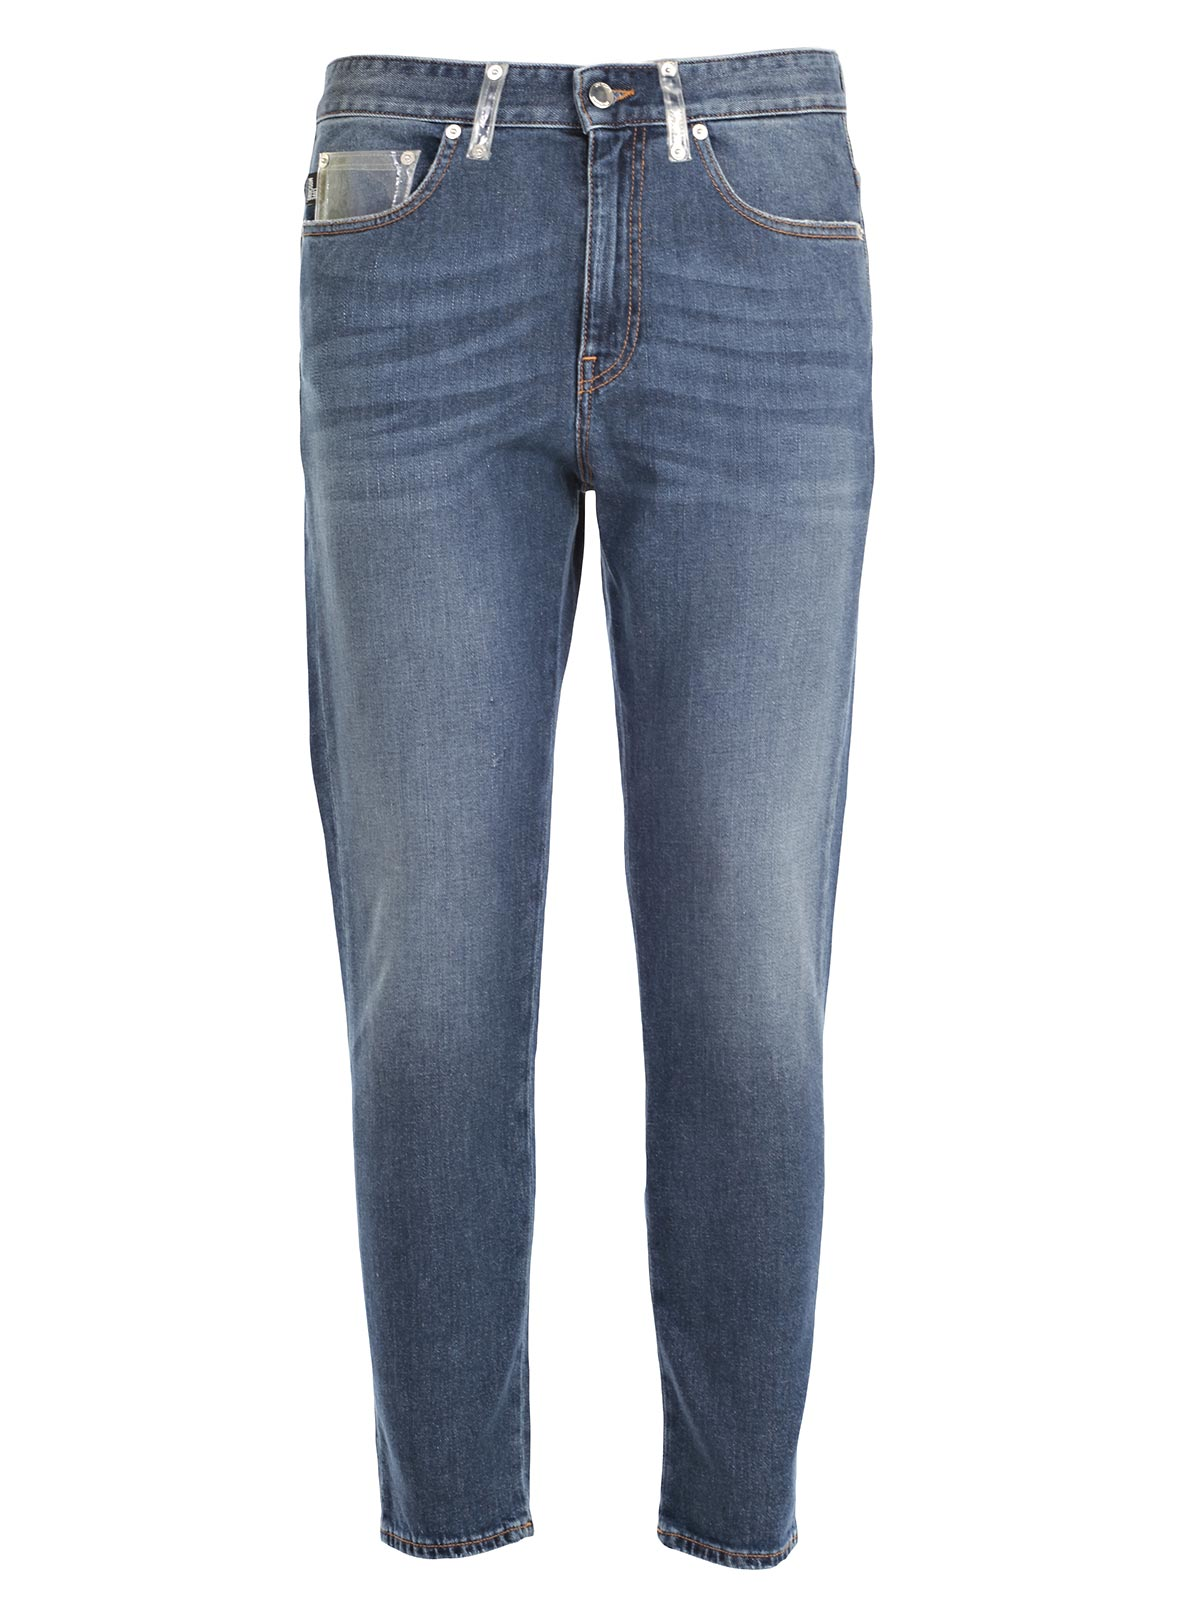 Picture of LOVE MOSCHINO JEANS JEANS TASCHE IN PVC TRASPARENTE